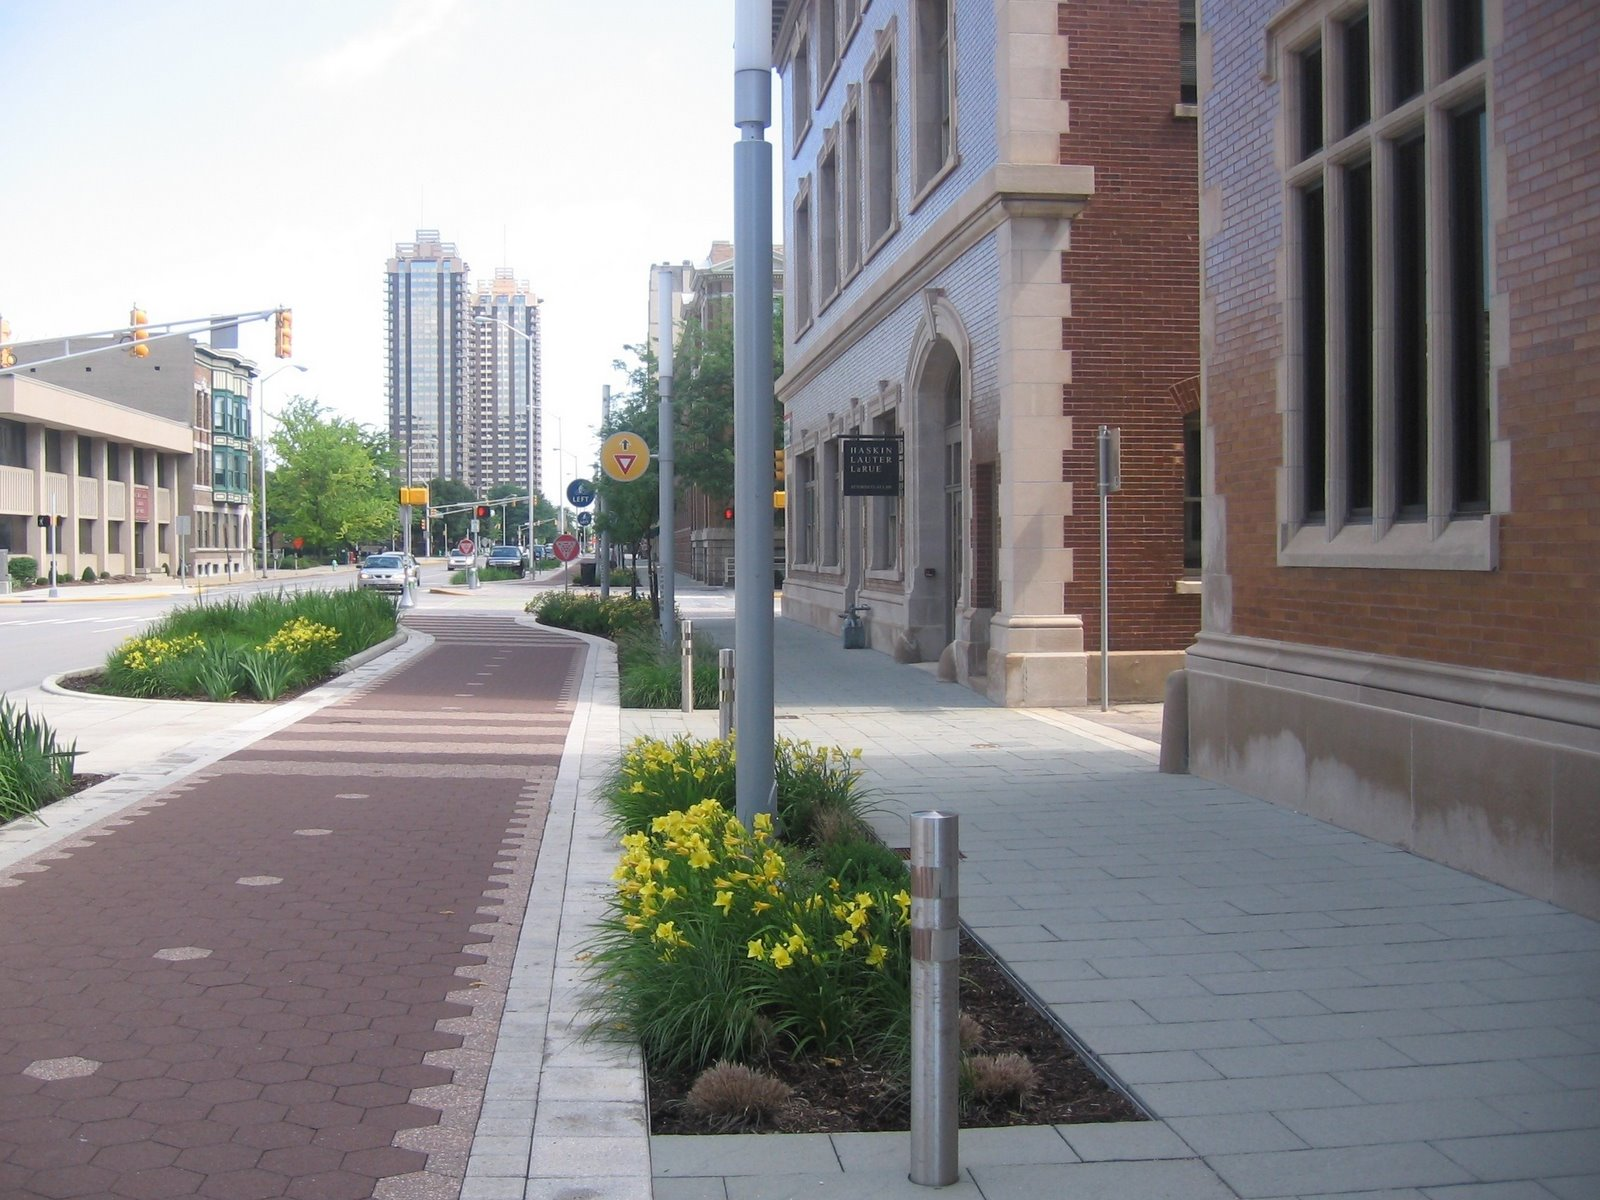 Complete Streets in downtown Indianapolis